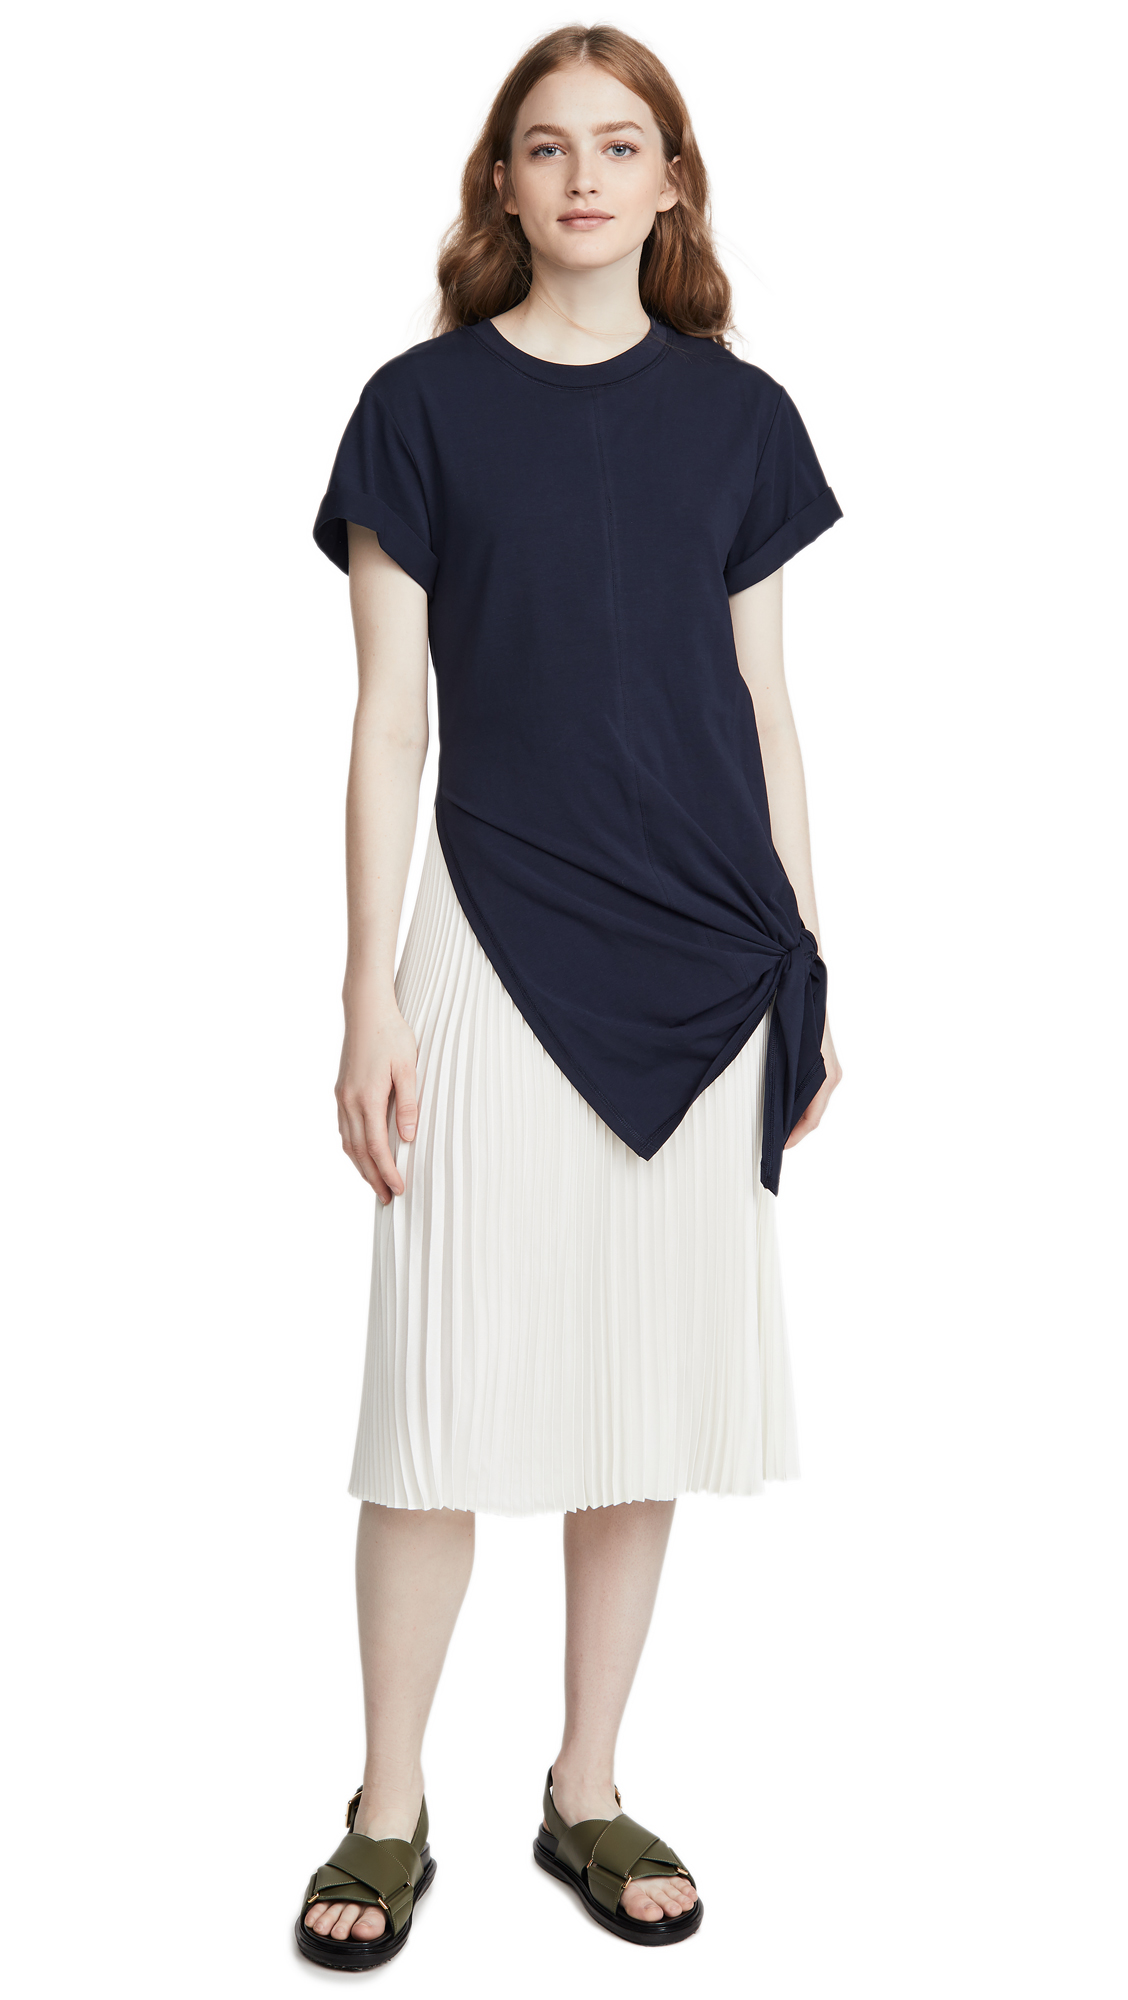 Buy 3.1 Phillip Lim Short Sleeve Side Tie Dress with Pleating online beautiful 3.1 Phillip Lim Clothing, Dresses